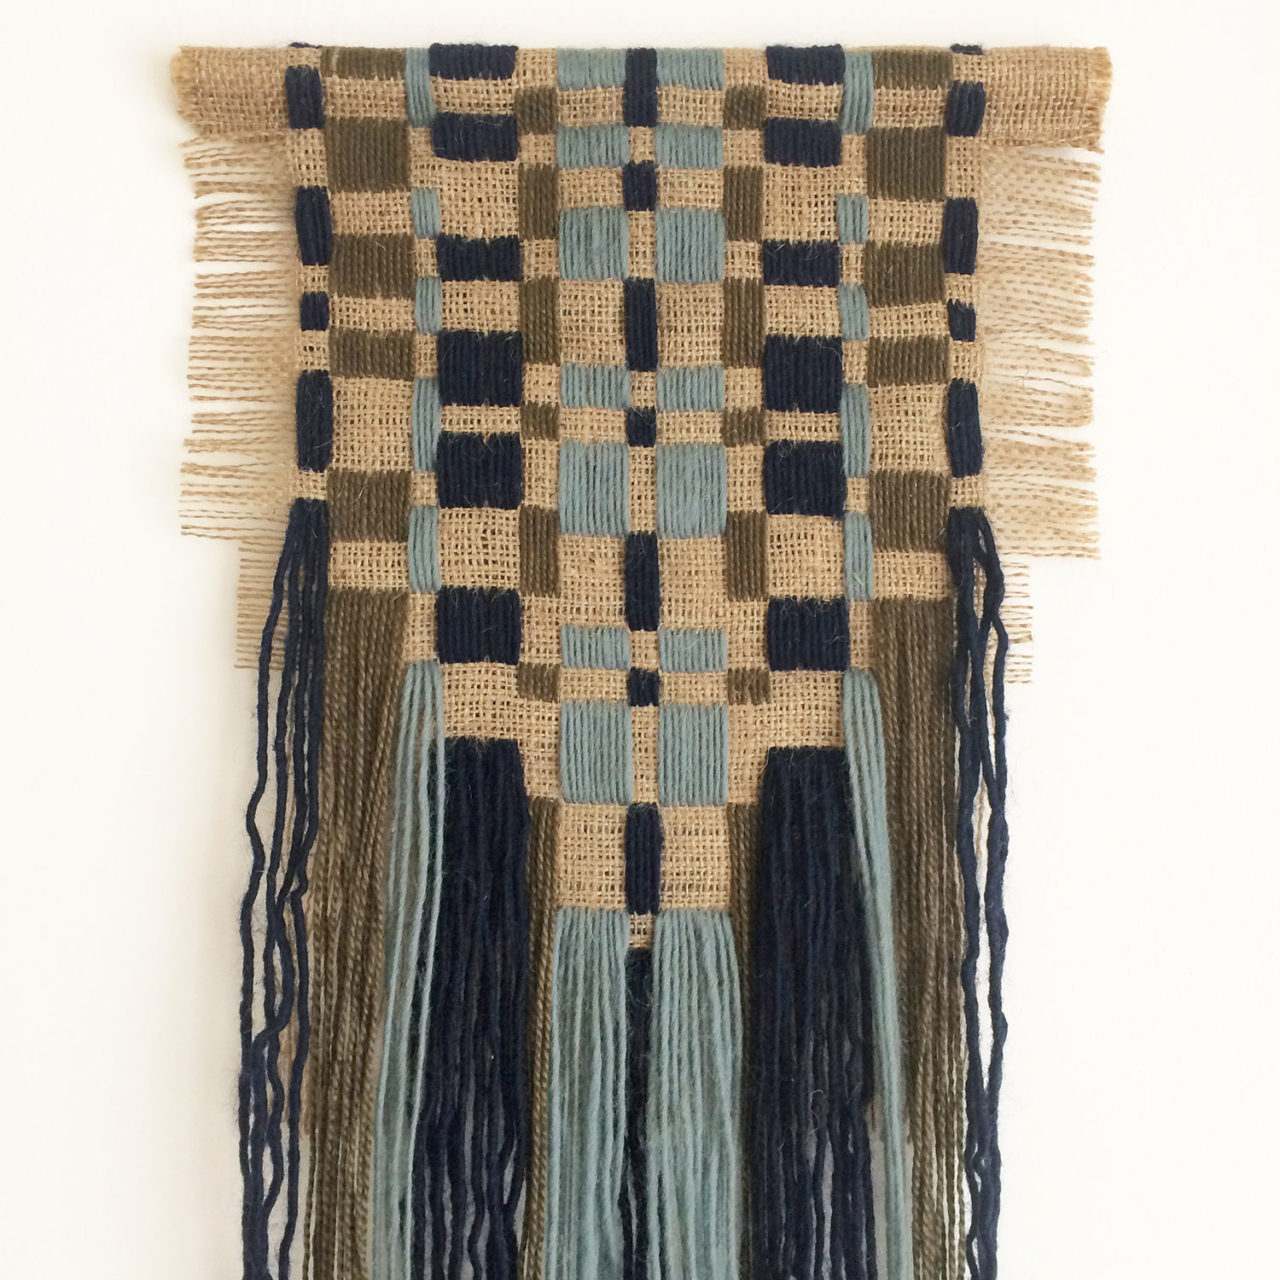 wallhanging_embroidered_burlap_olive_blue_2